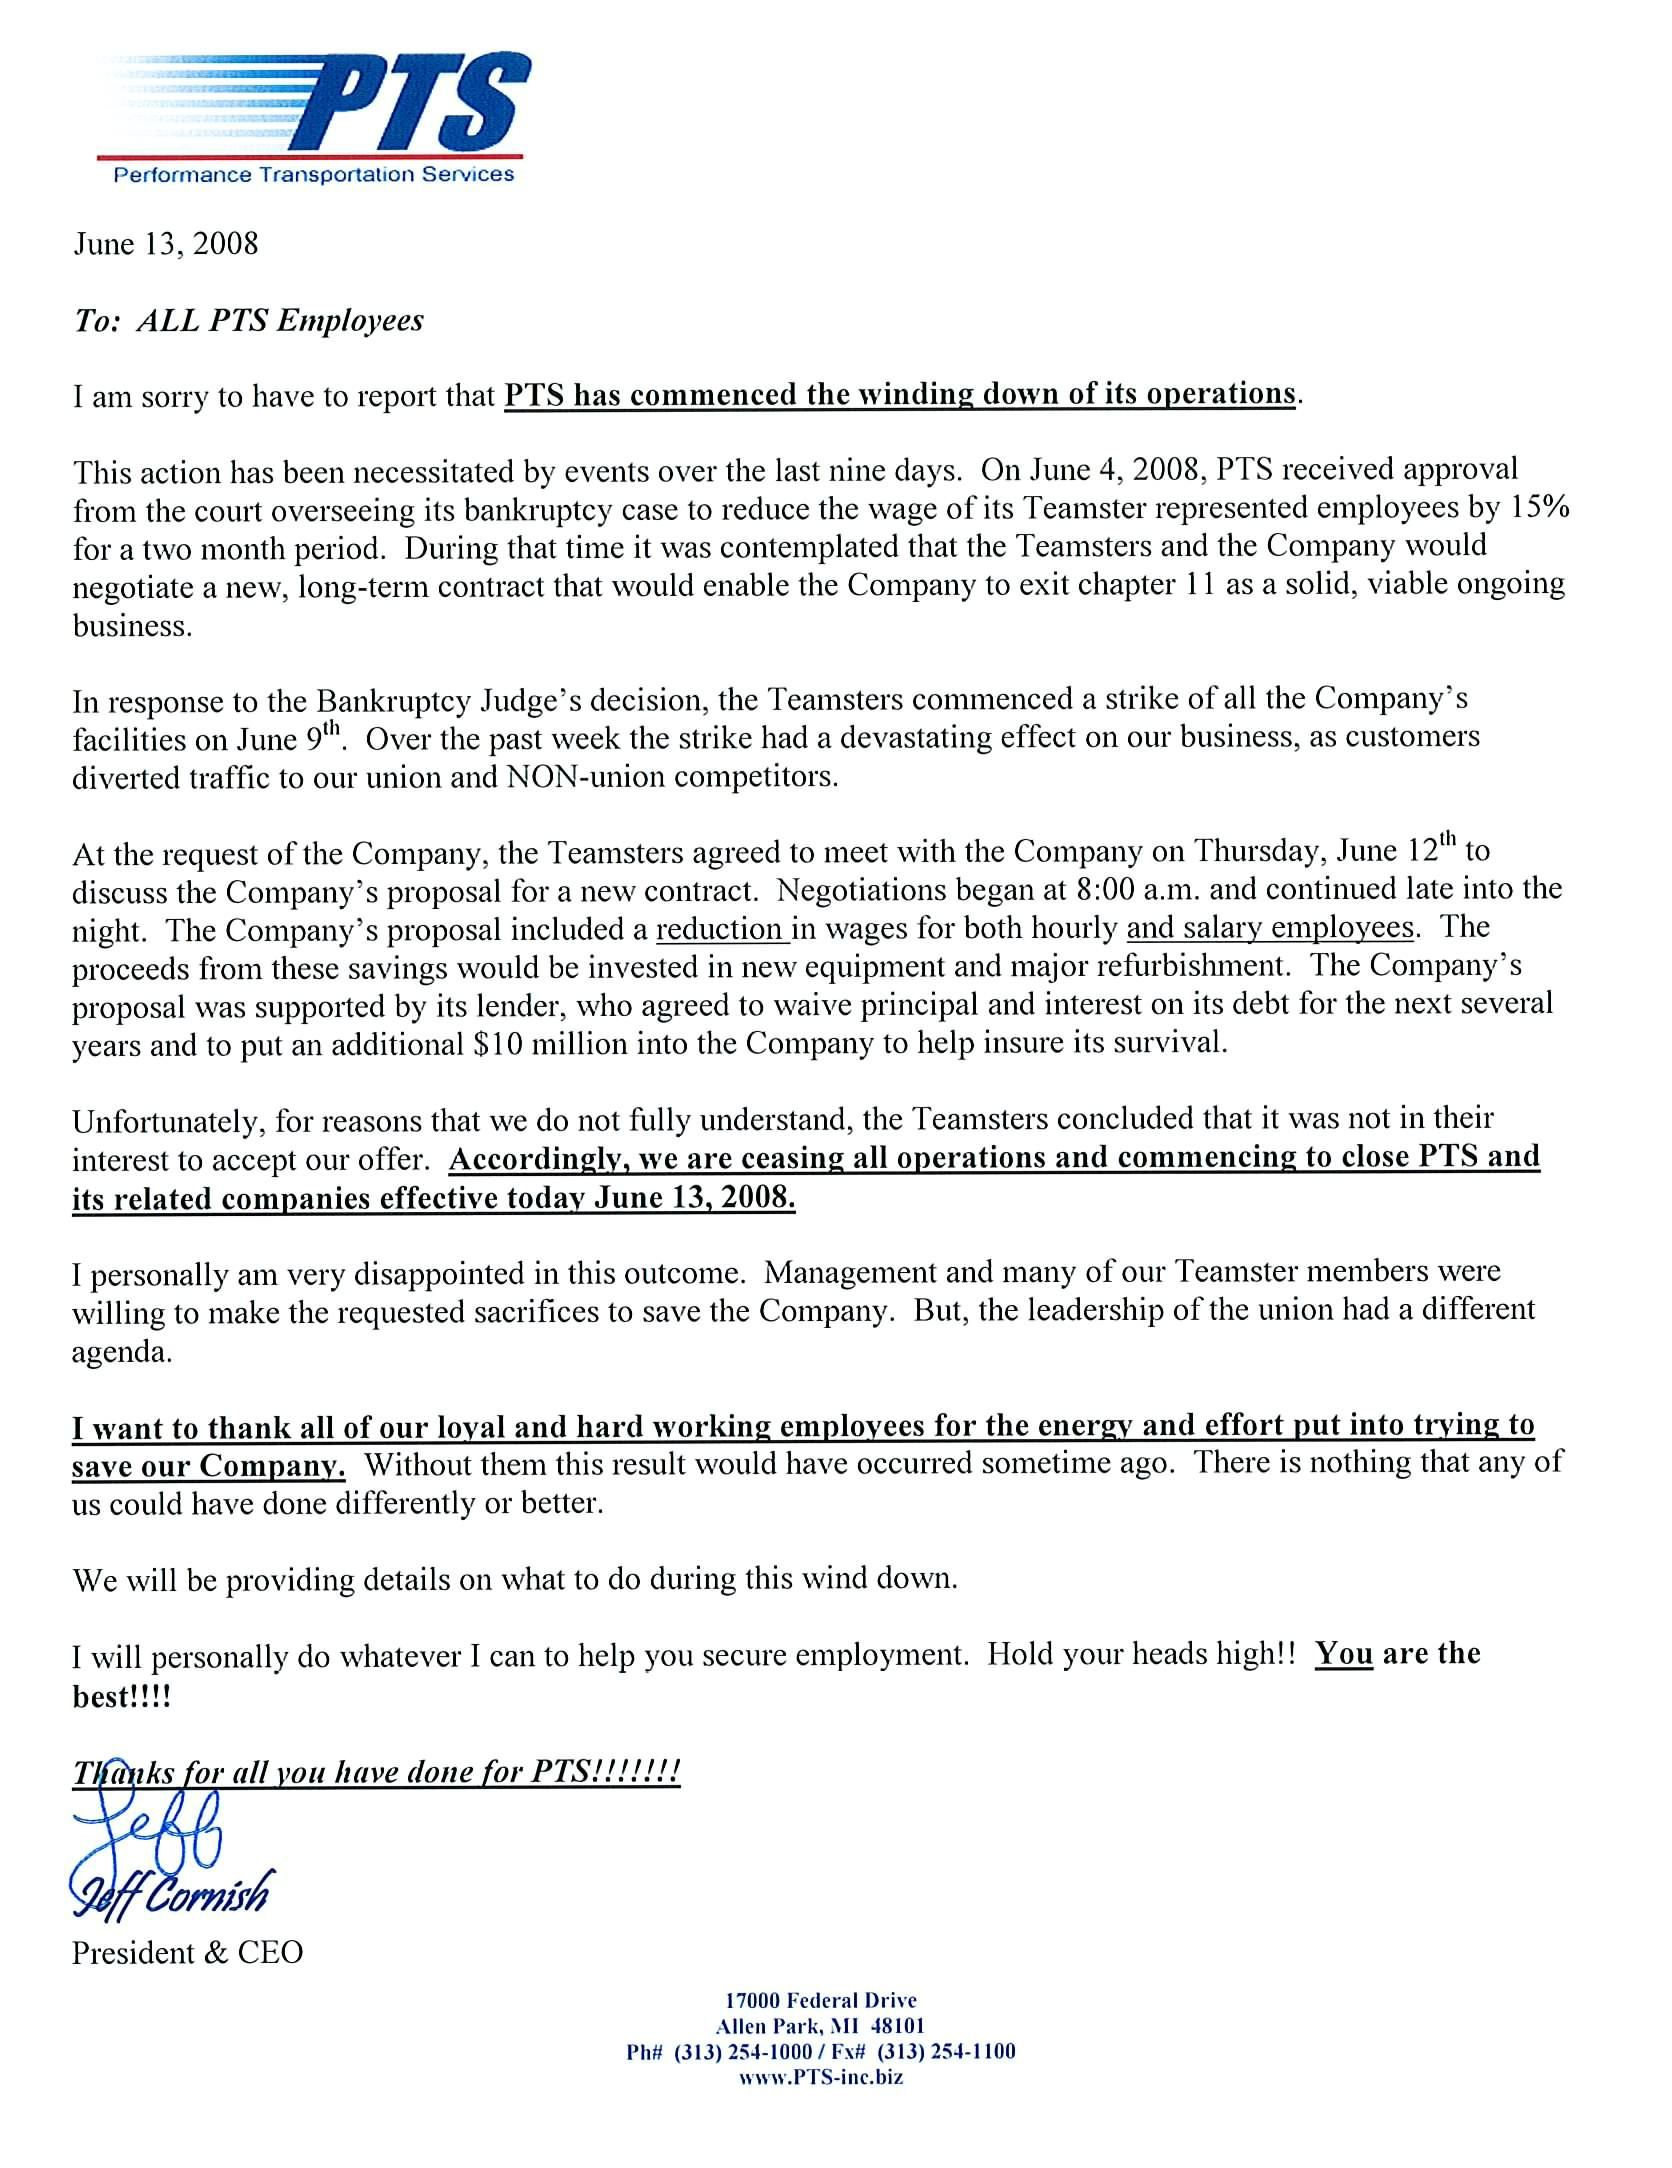 formal business letter closing examples the closing of pts is now official transport foolclosing a 14003